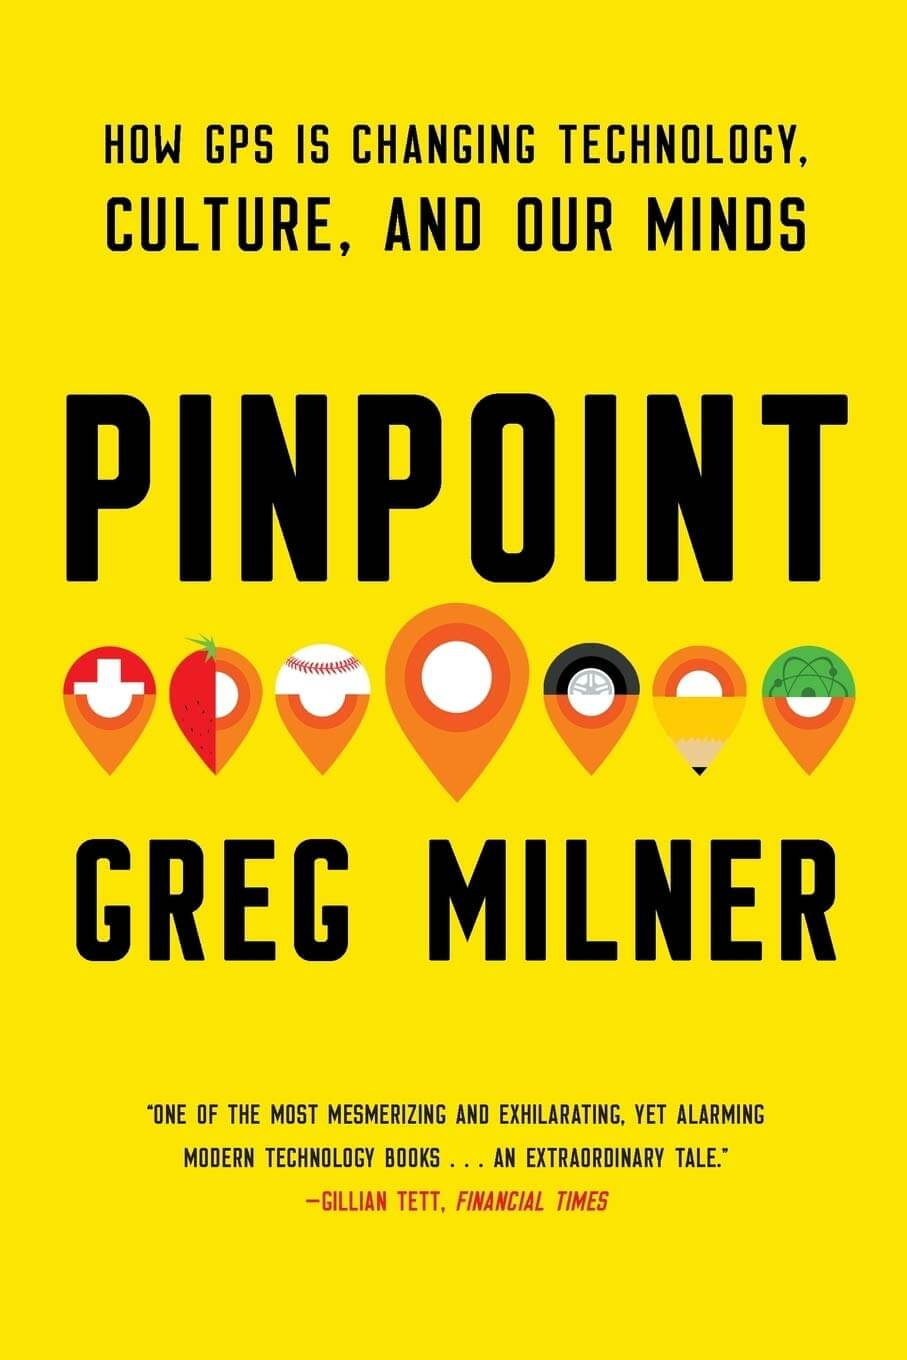 Pinpoint book cover image